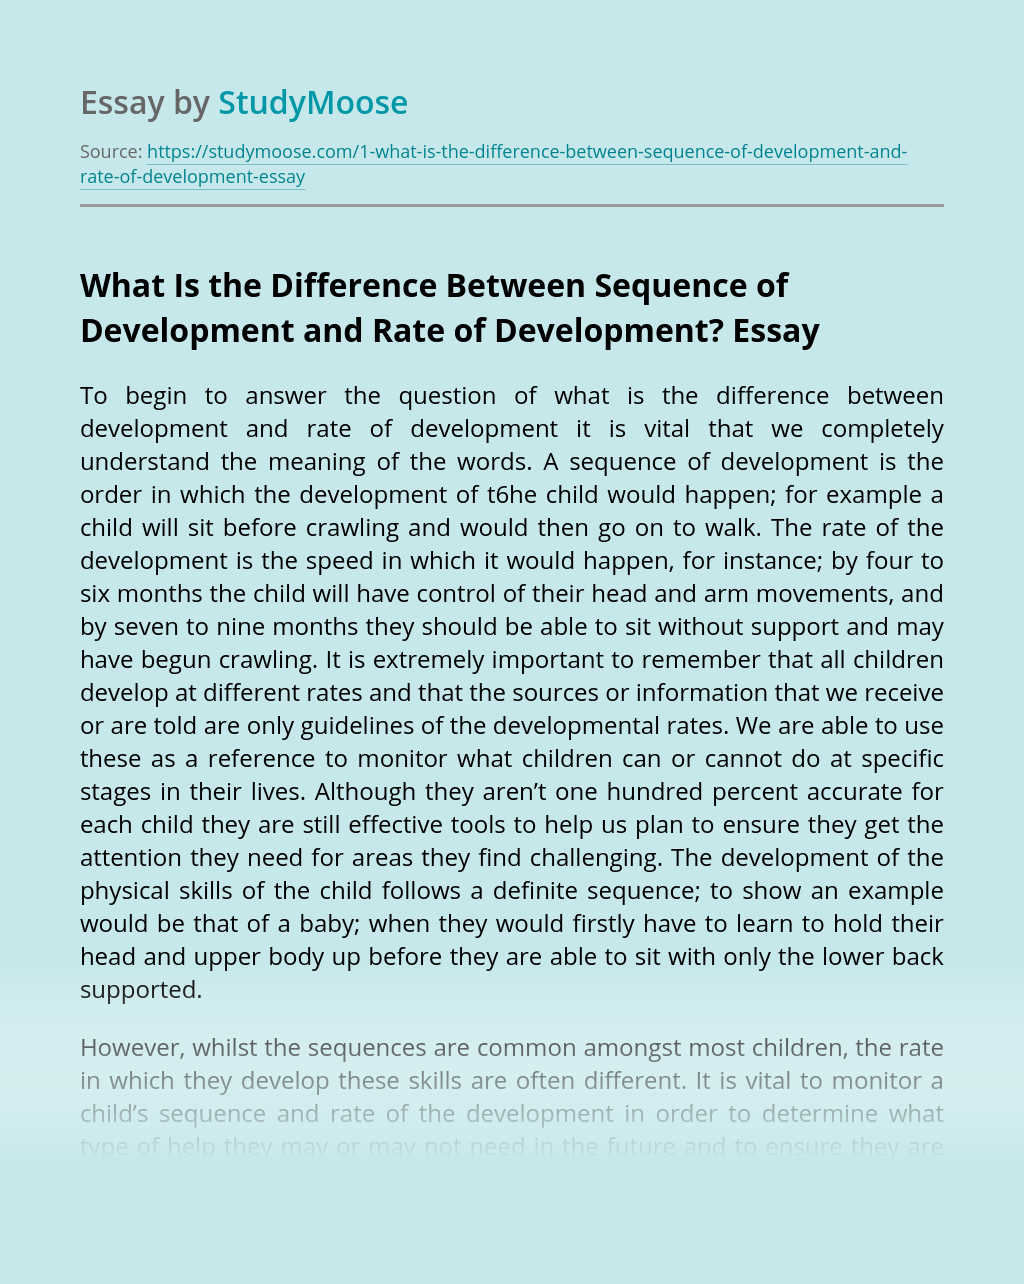 What Is the Difference Between Sequence of Development and Rate of Development?